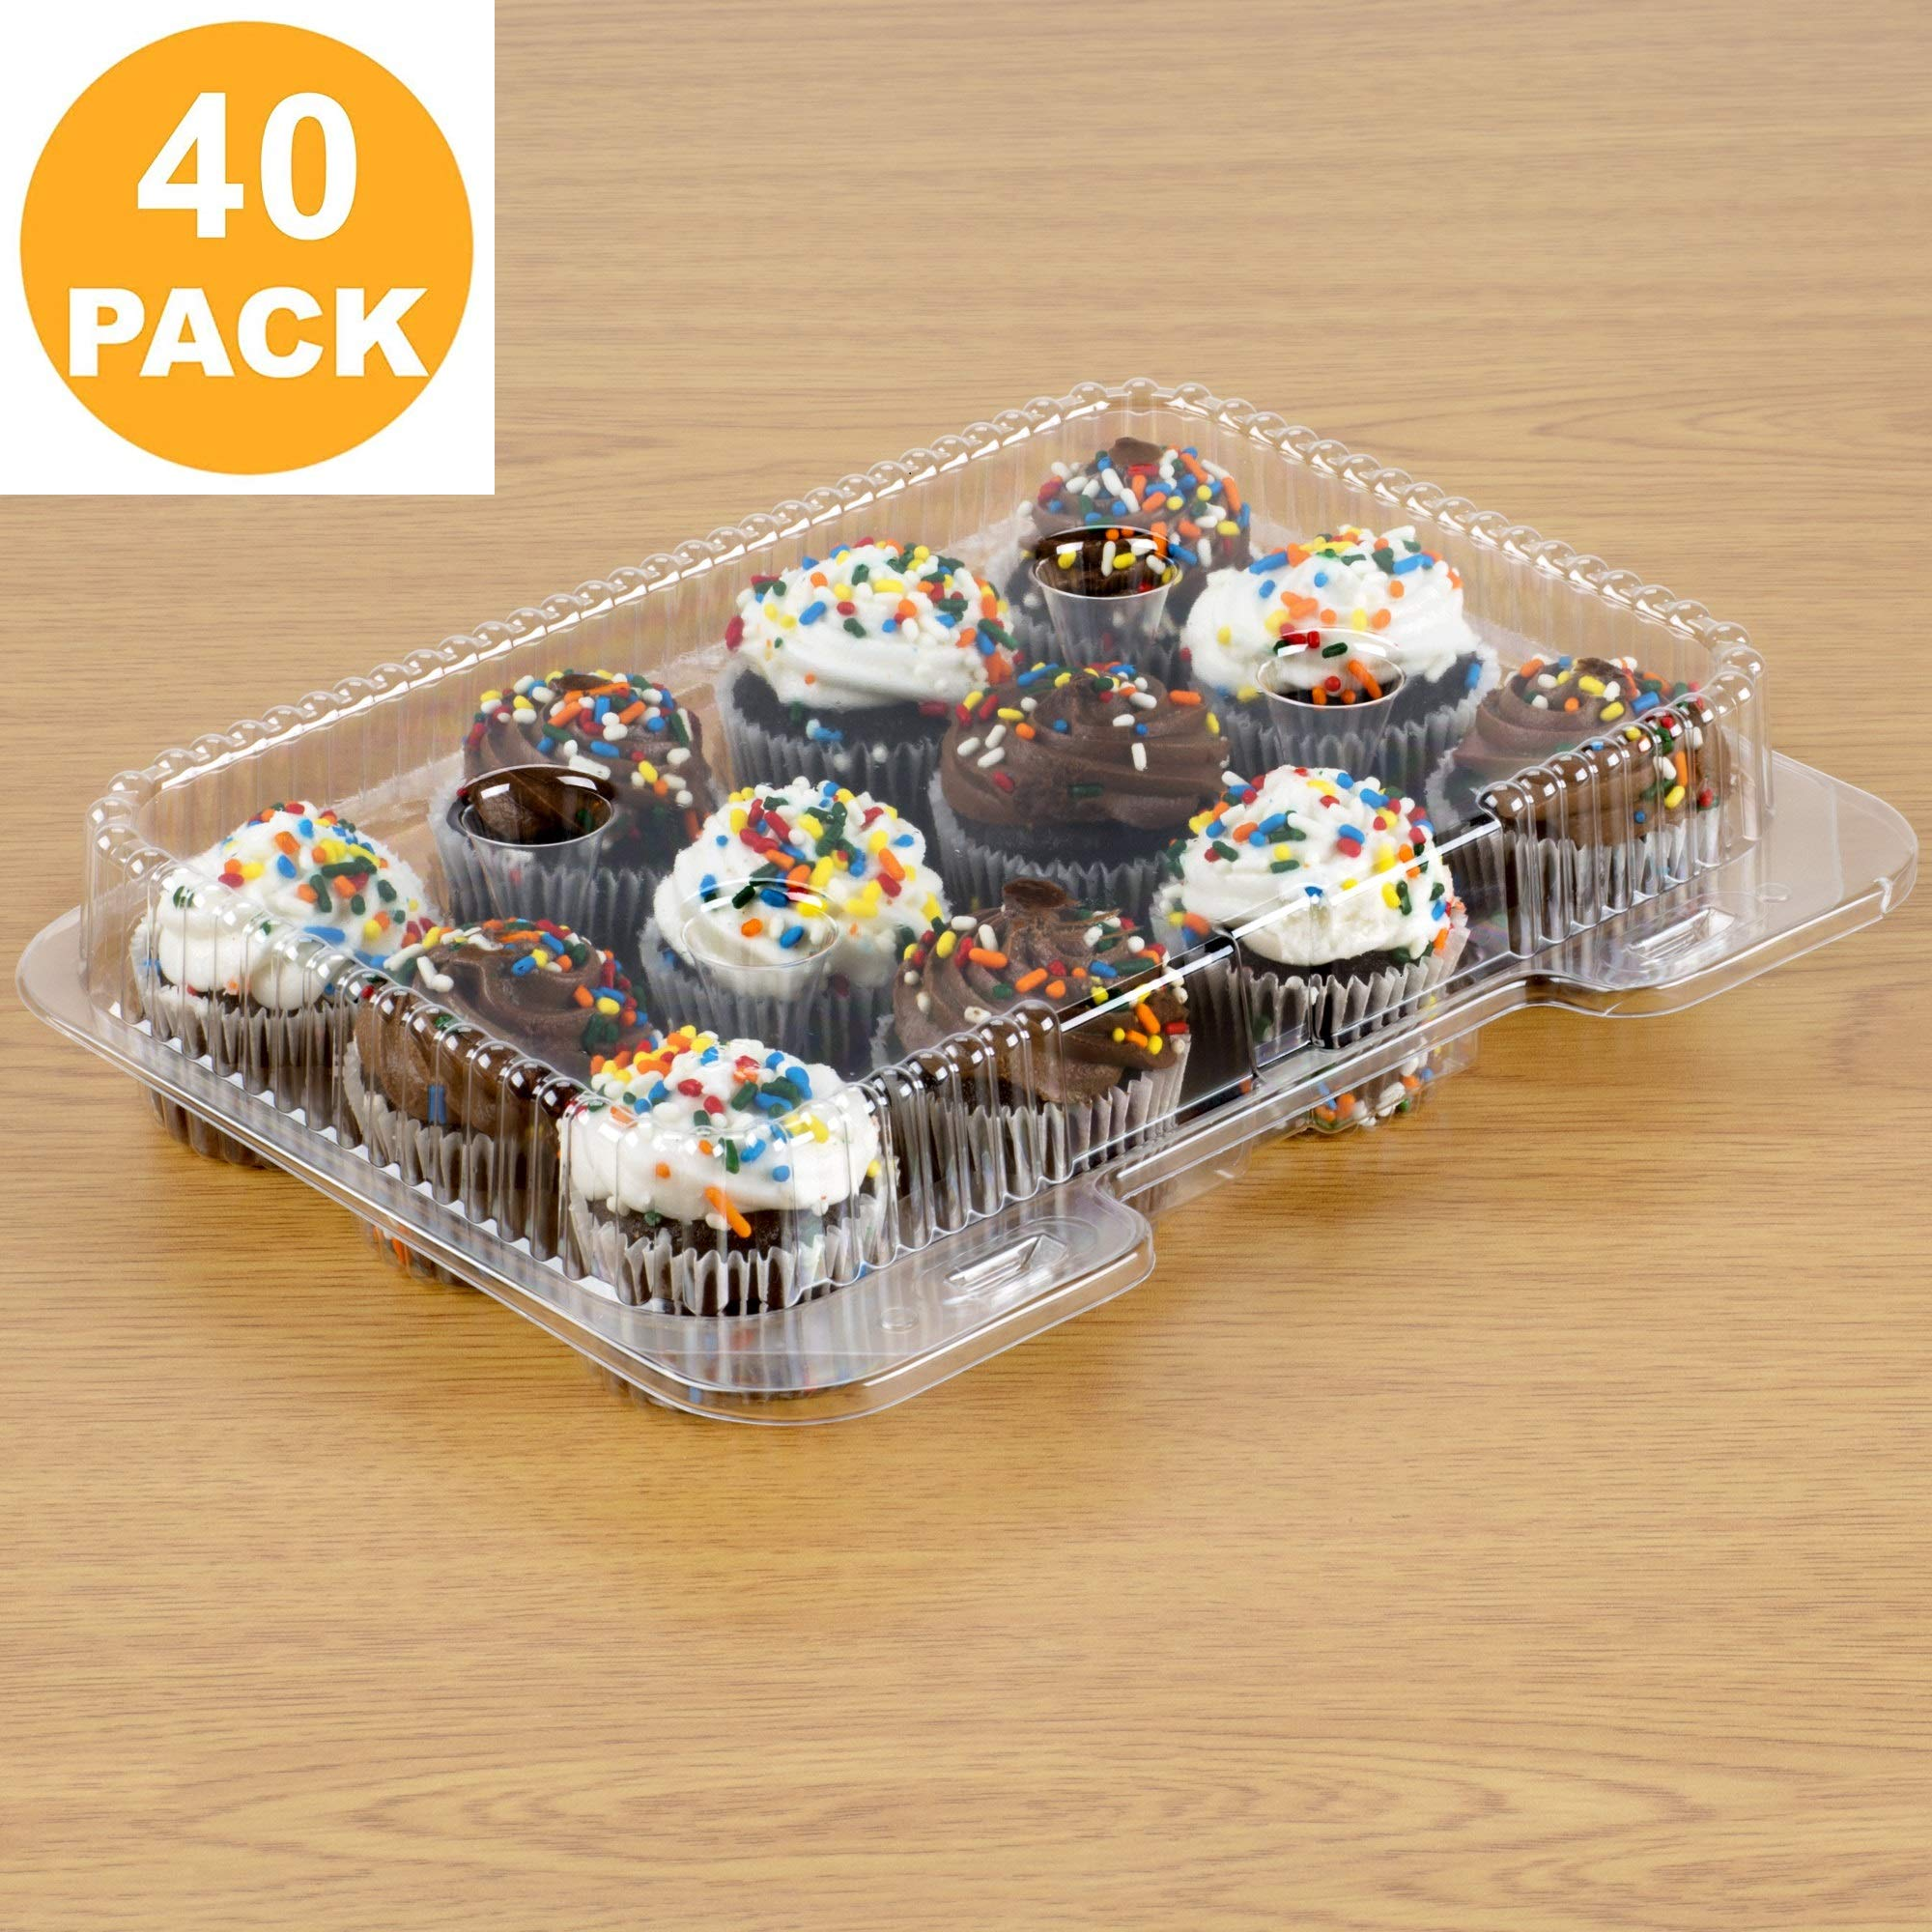 40 Mini Cupcake Boxes | Mini Cupcake Container 12 Compartment - Clear Plastic Mini Cupcake Carrier | Mini Muffin Holders - Small Cupcake Clamshell | Disposable Cupcake Packaging Transporter